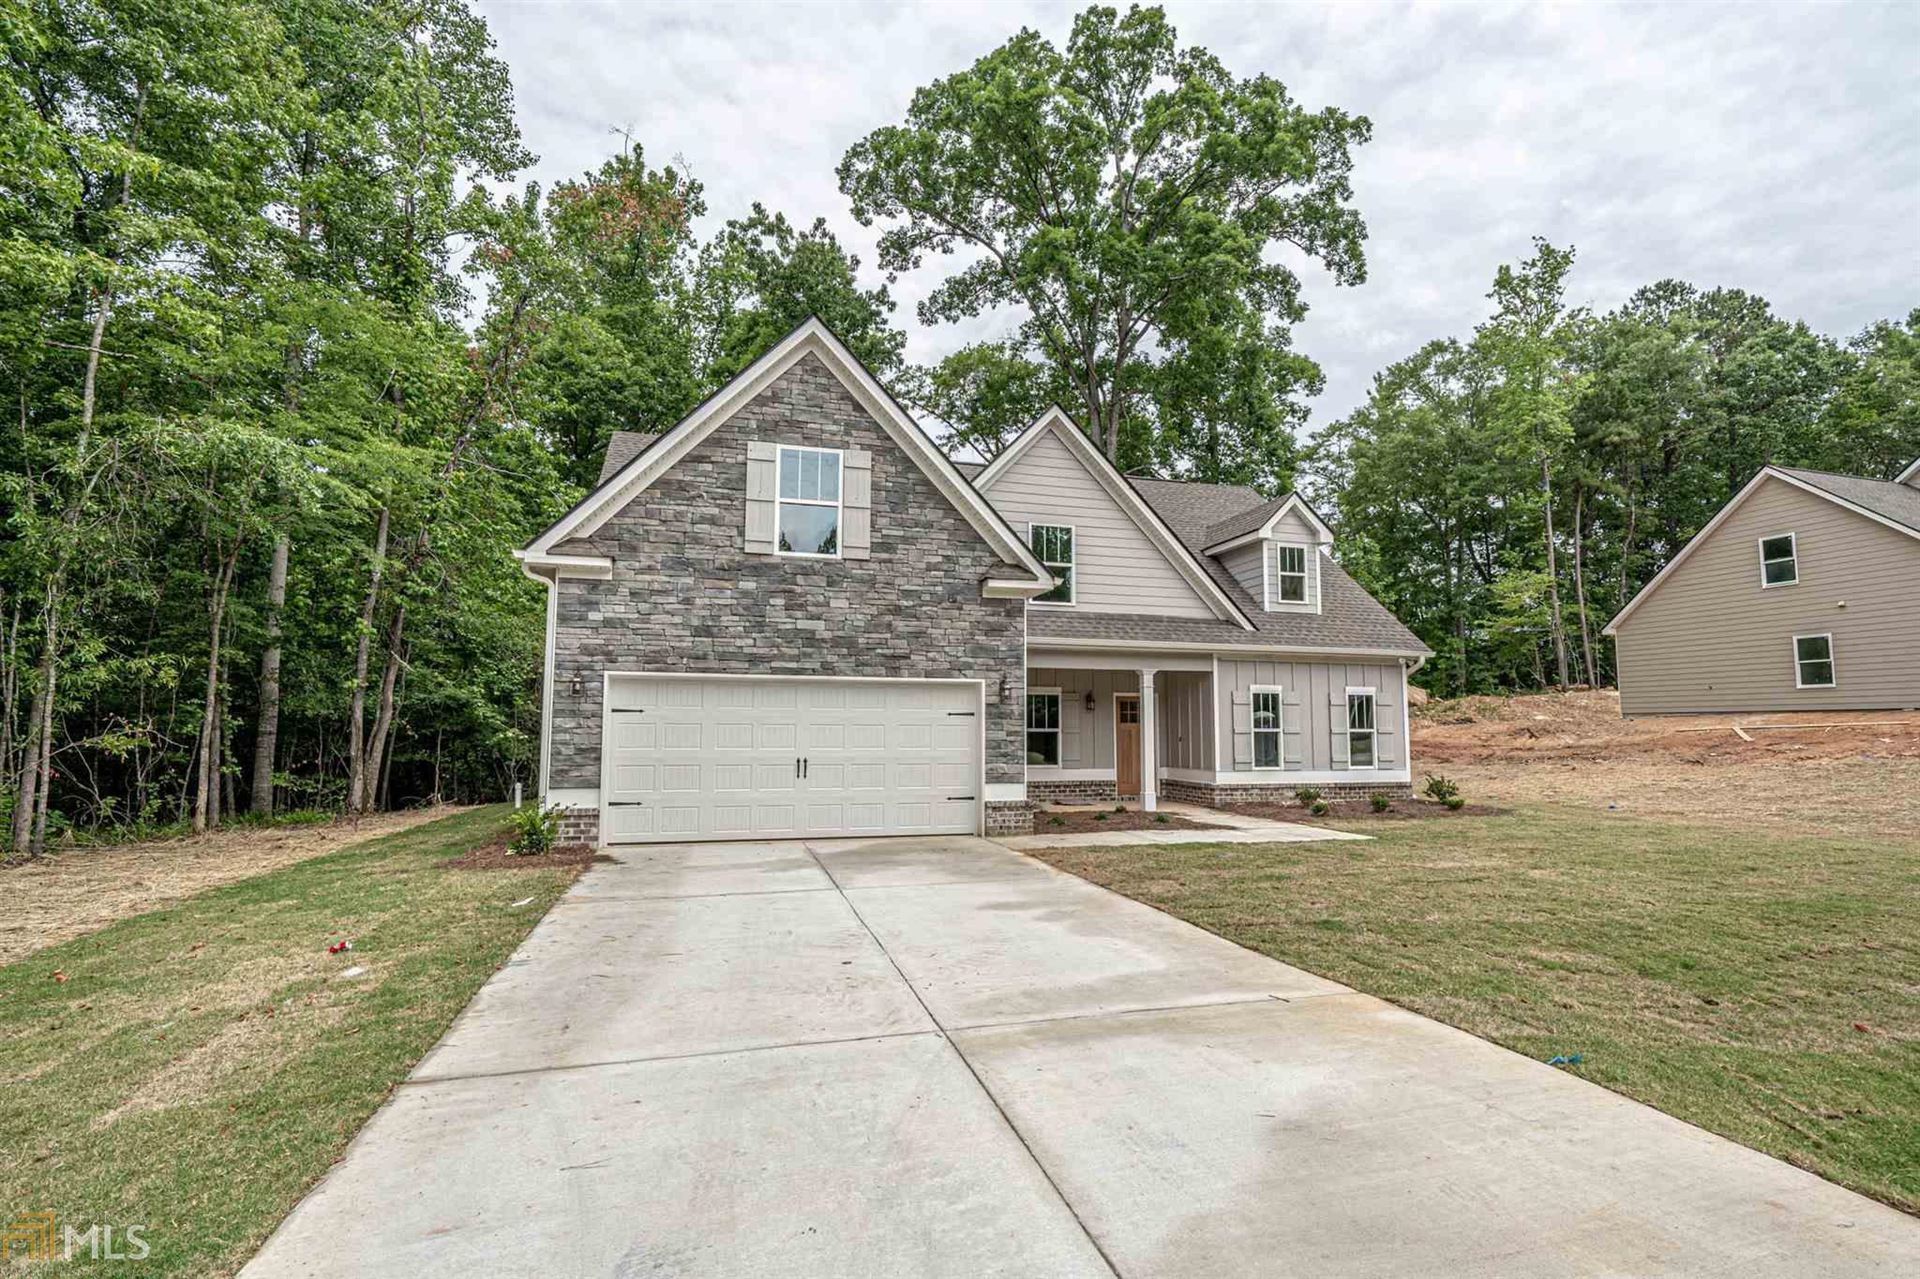 1038 Boulder Dr, Gray, GA 31032 - MLS#: 8915409